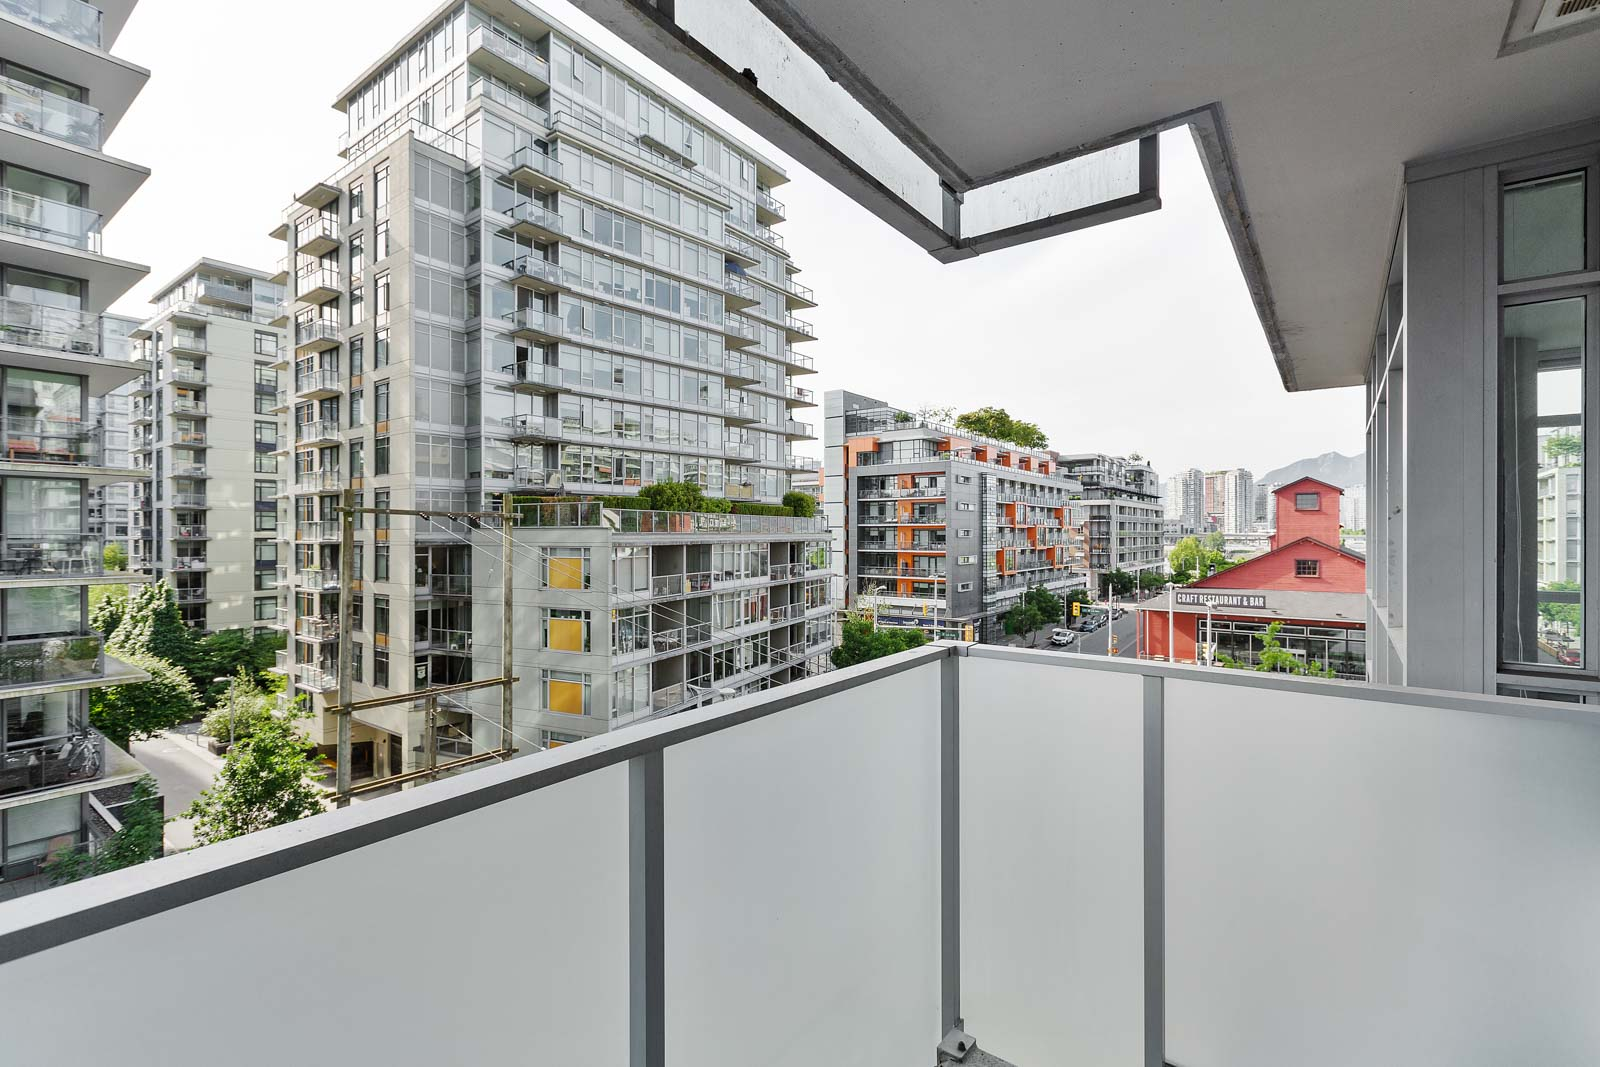 spacious balcony that provides scenic view of the false creek/olympic village neighbourhood